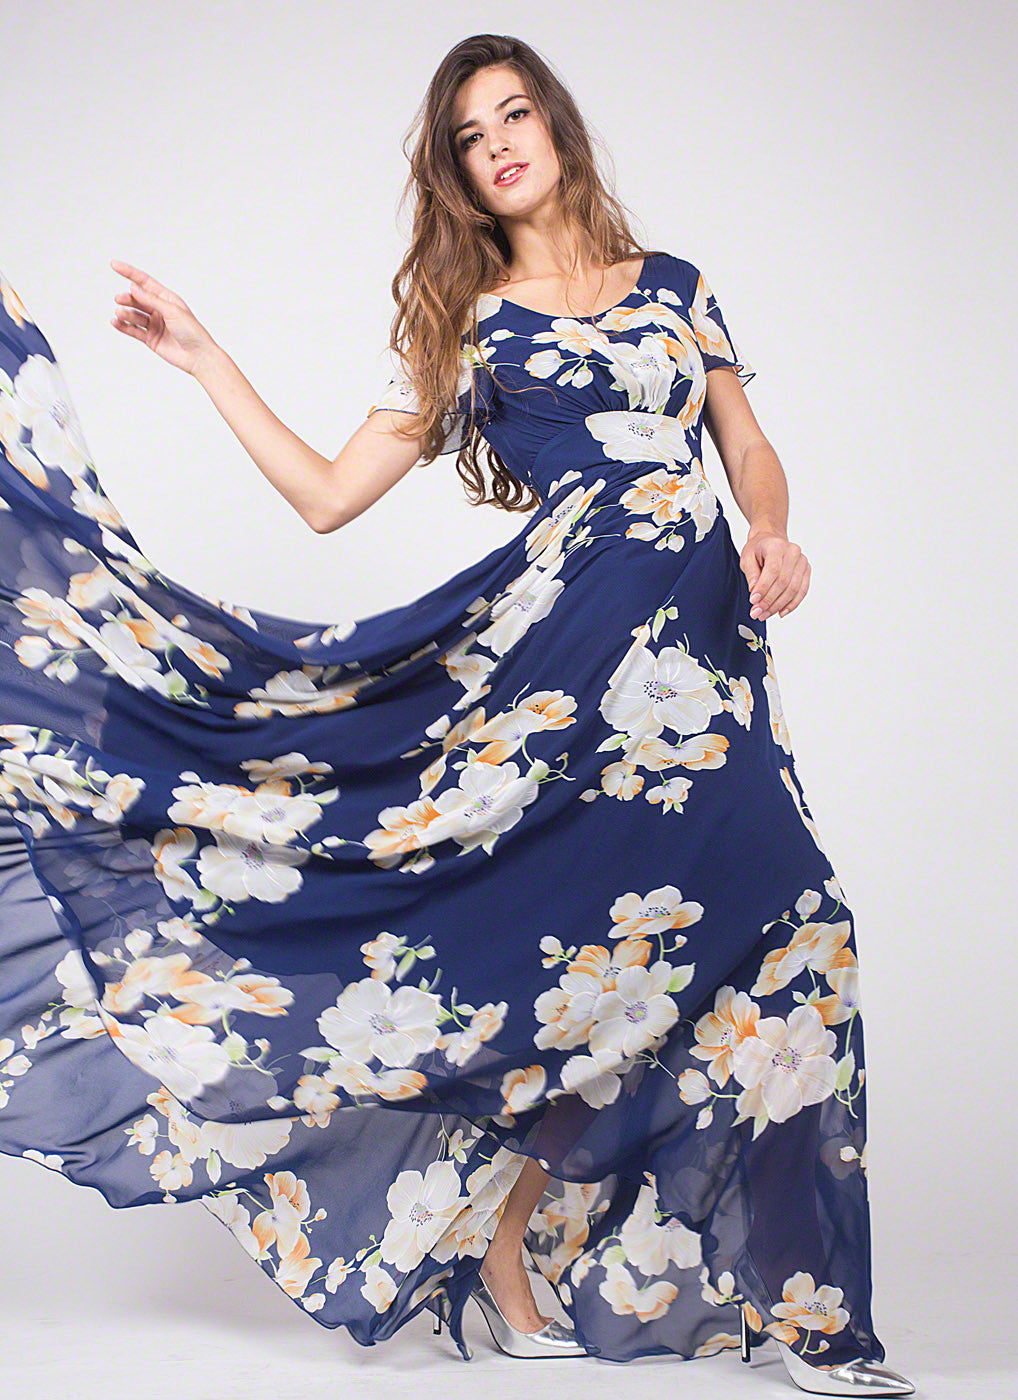 c7eef9590c89 Dark Blue Chiffon Maxi Length Evening Dress with Large White Floral Print,  Elegant Blue Long